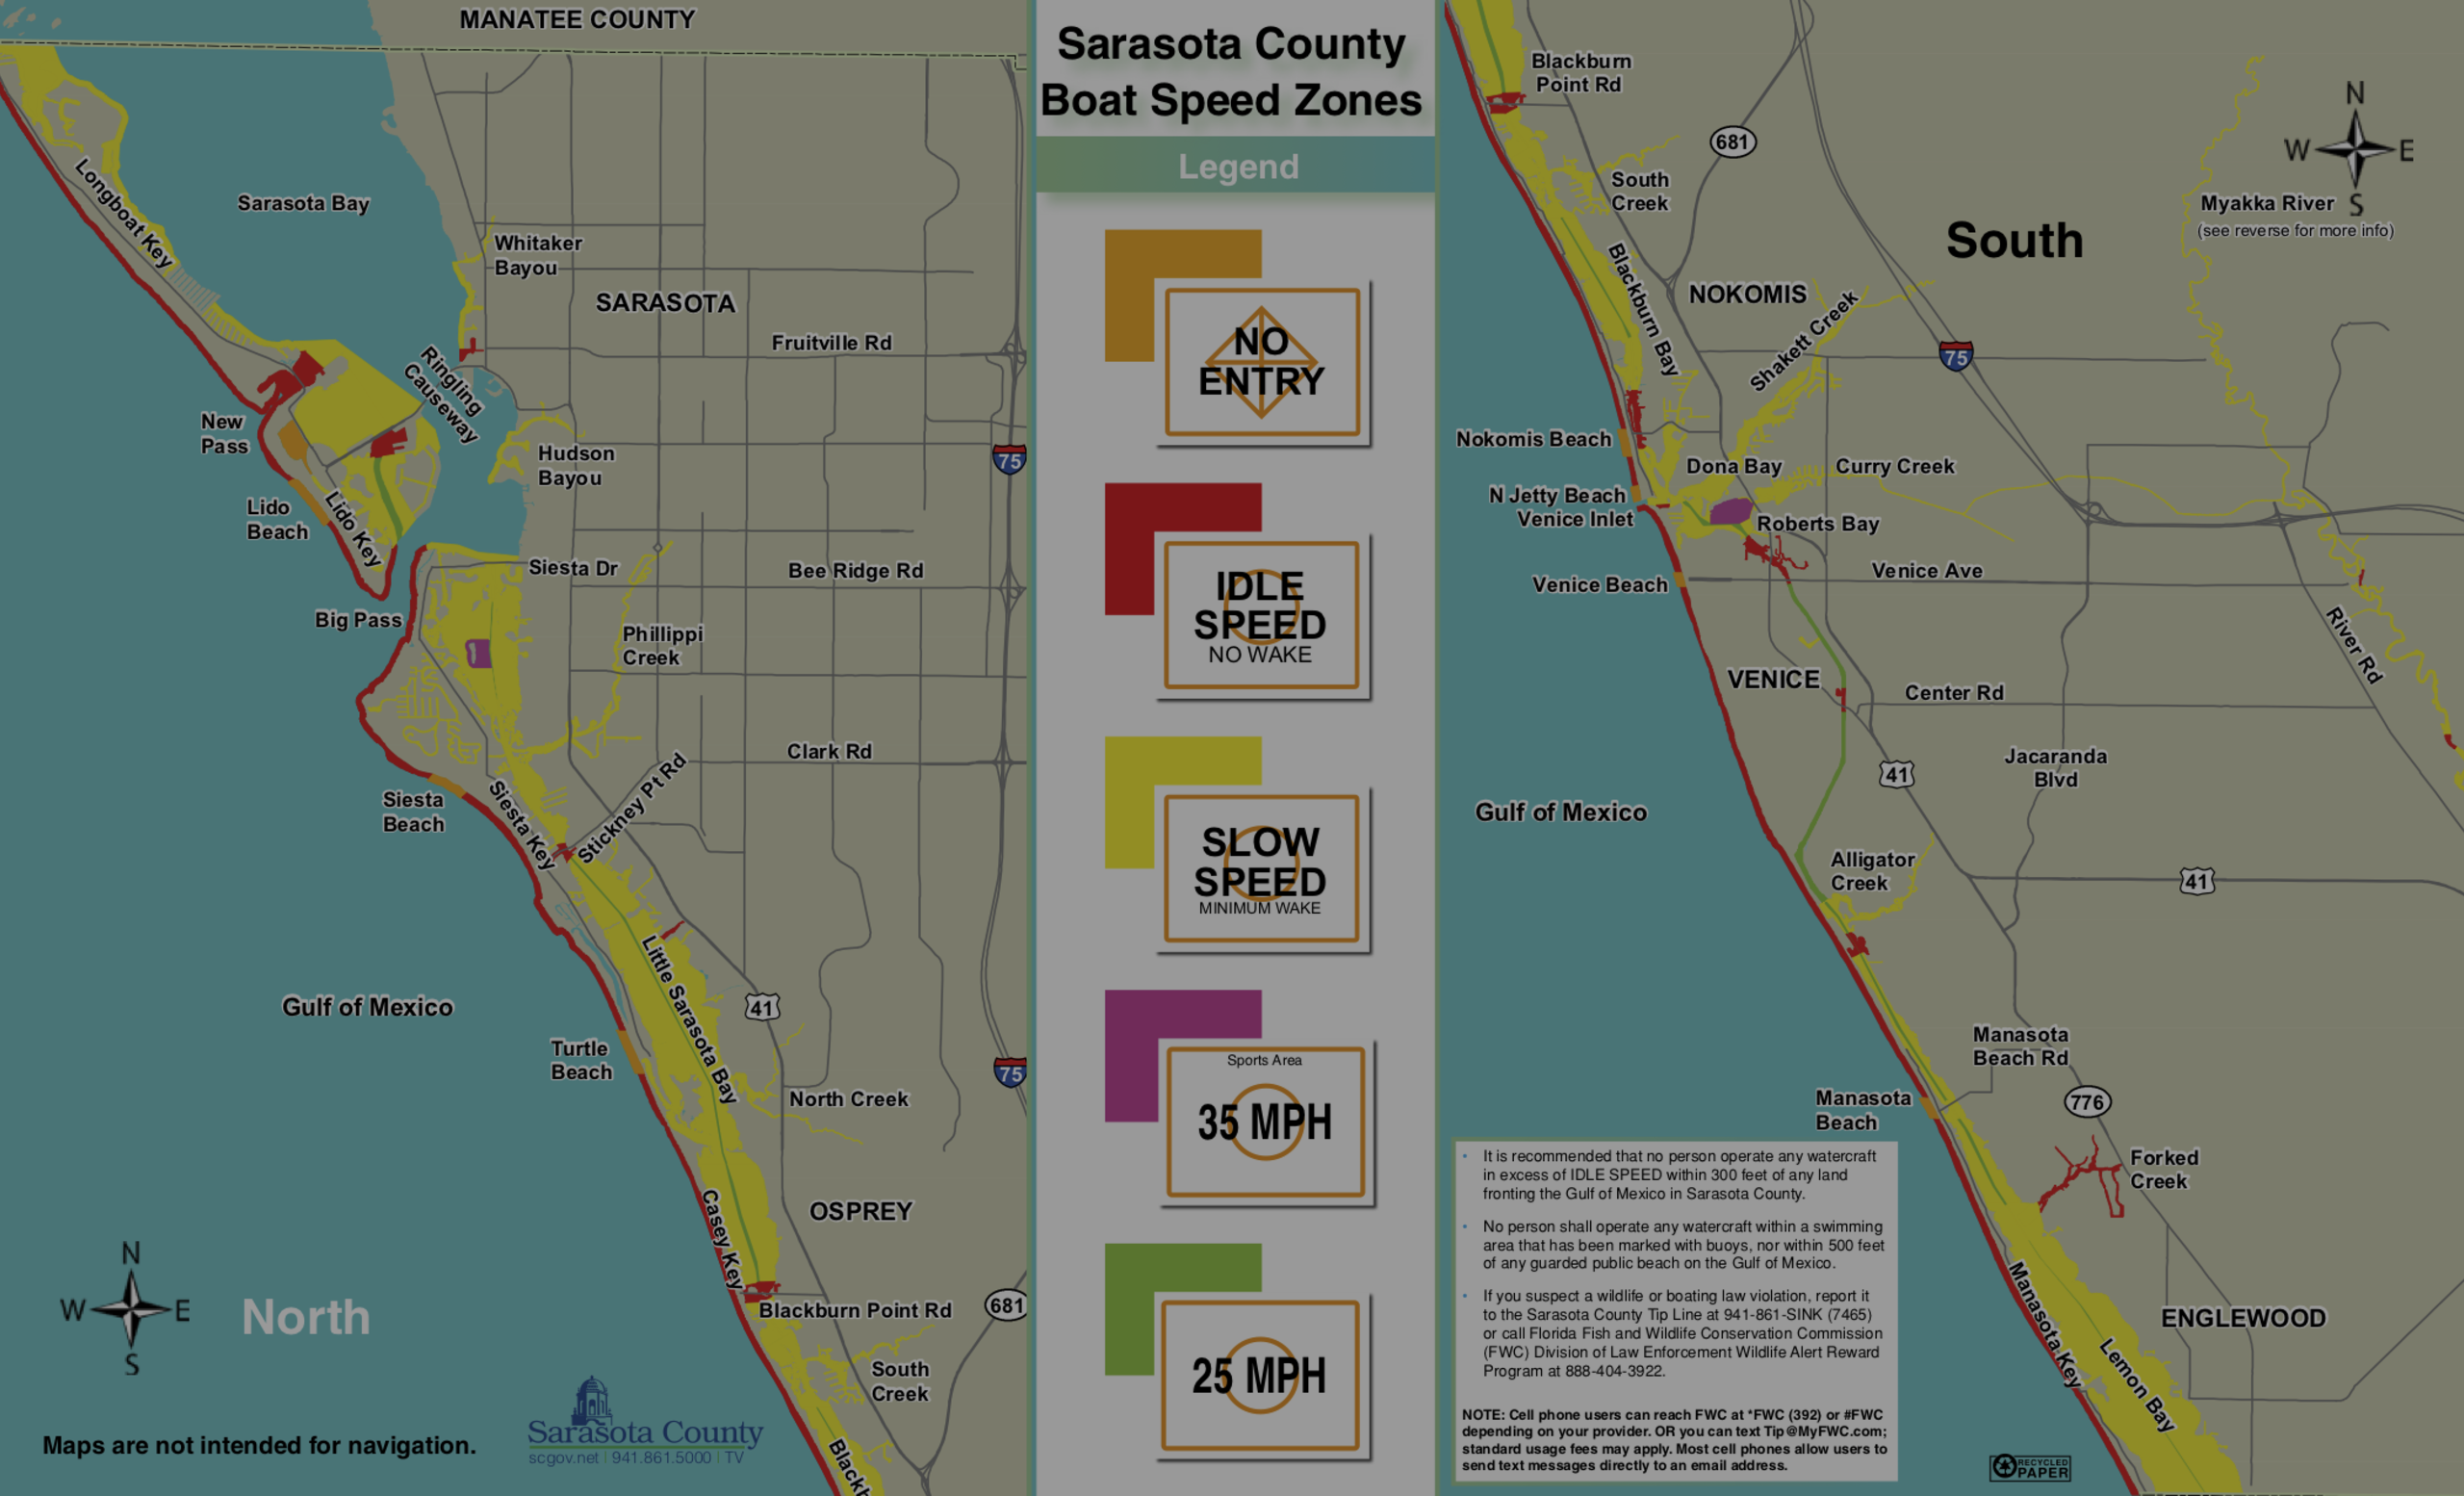 DOWNLOADABLE Map: Sarasota County Boat Speed Zones